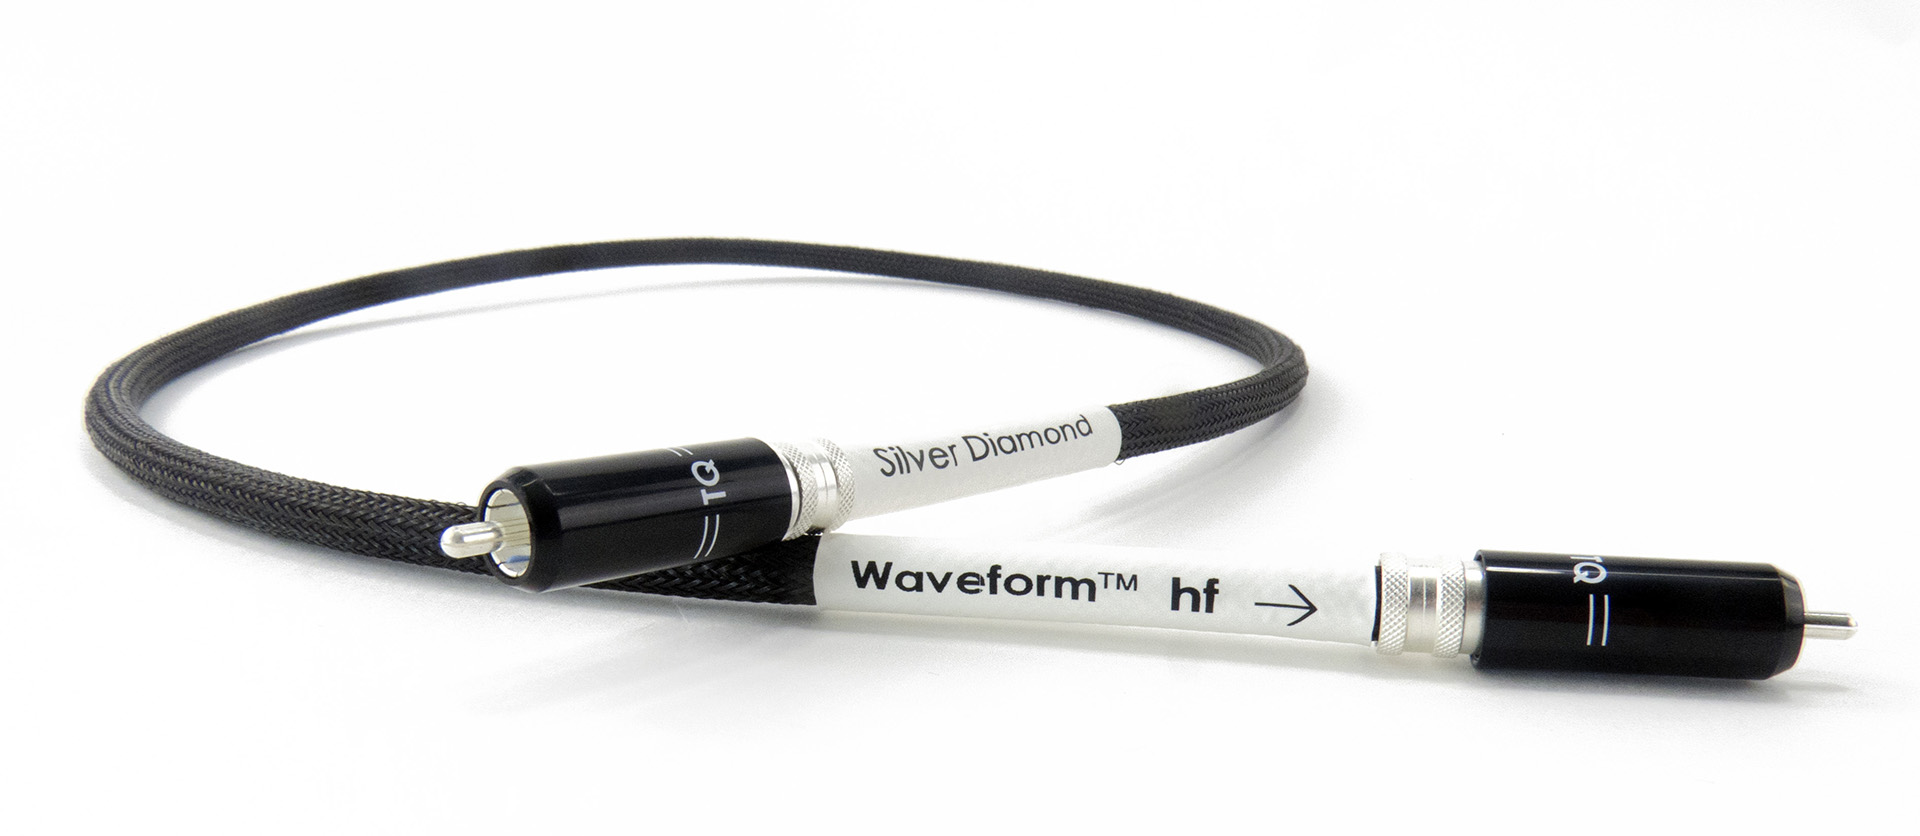 Tellurium Q | Silver Diamond | Waveform® HF RCA